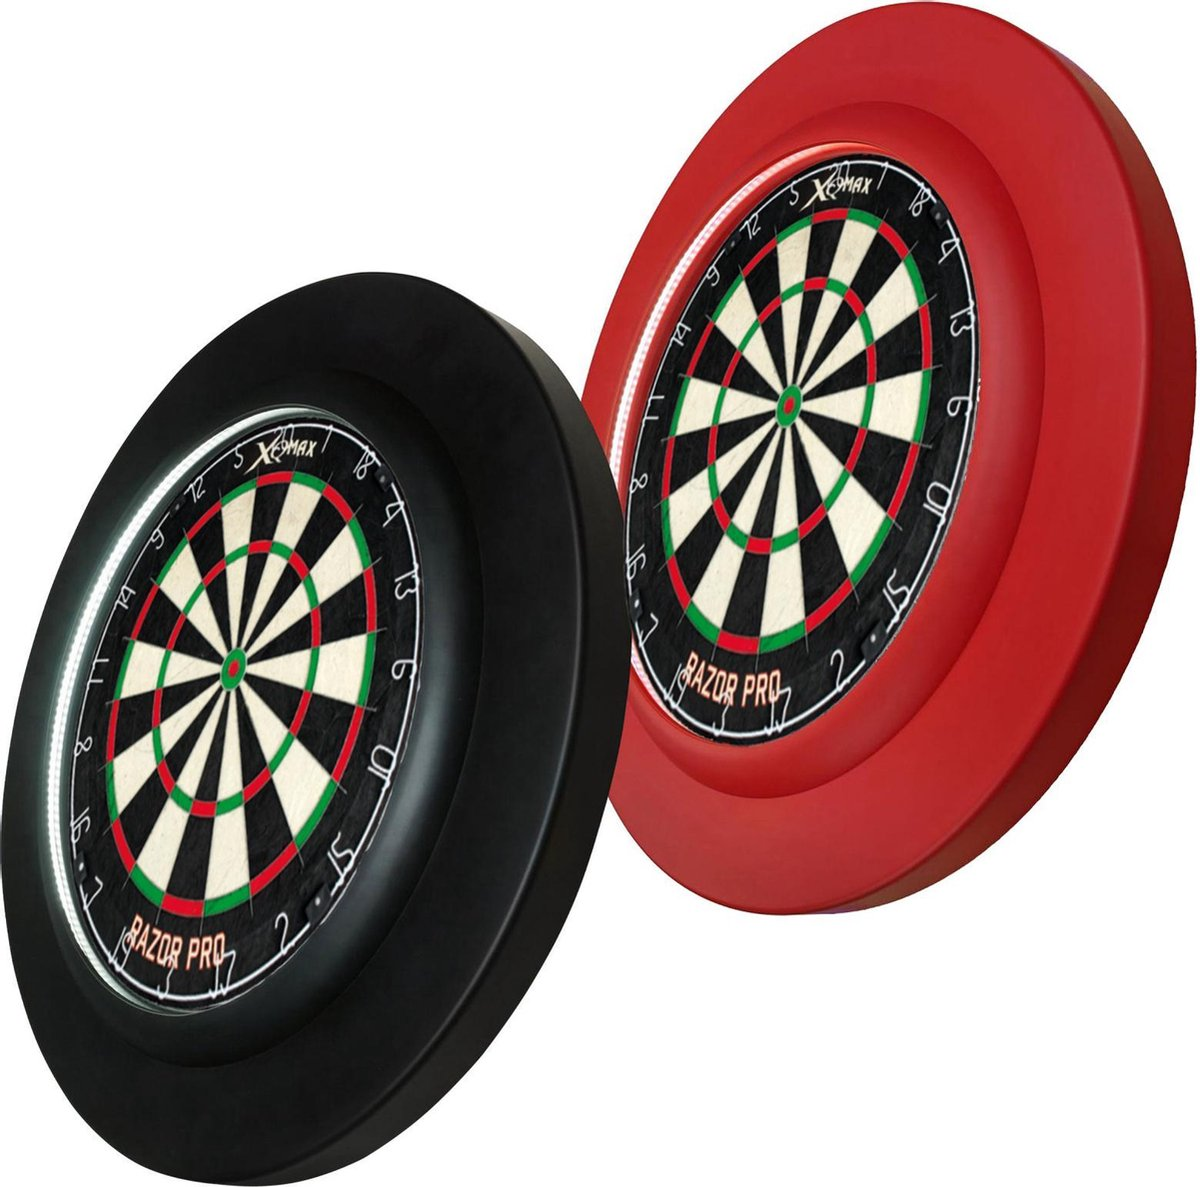 Dragon Darts PU LED set - surround ring - inclusief - dartboard verlichting - en Razor PRO - dartbord - rood